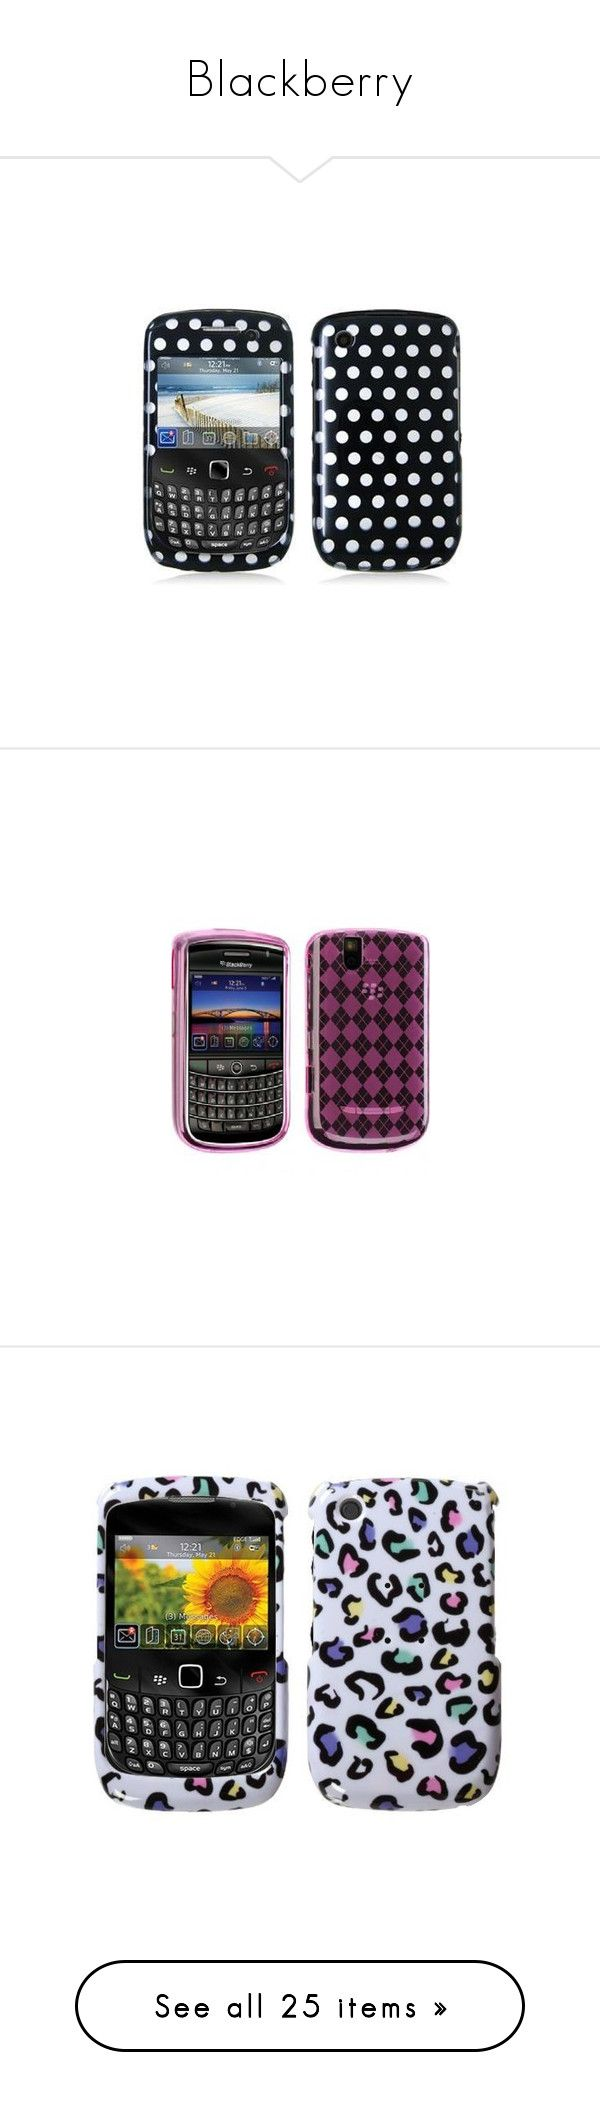 """Blackberry"" by xsunshineee ❤ liked on Polyvore featuring accessories, tech accessories, phones, electronics, phone cases, technology, beauty products, fillers, cell phones and cellphone"